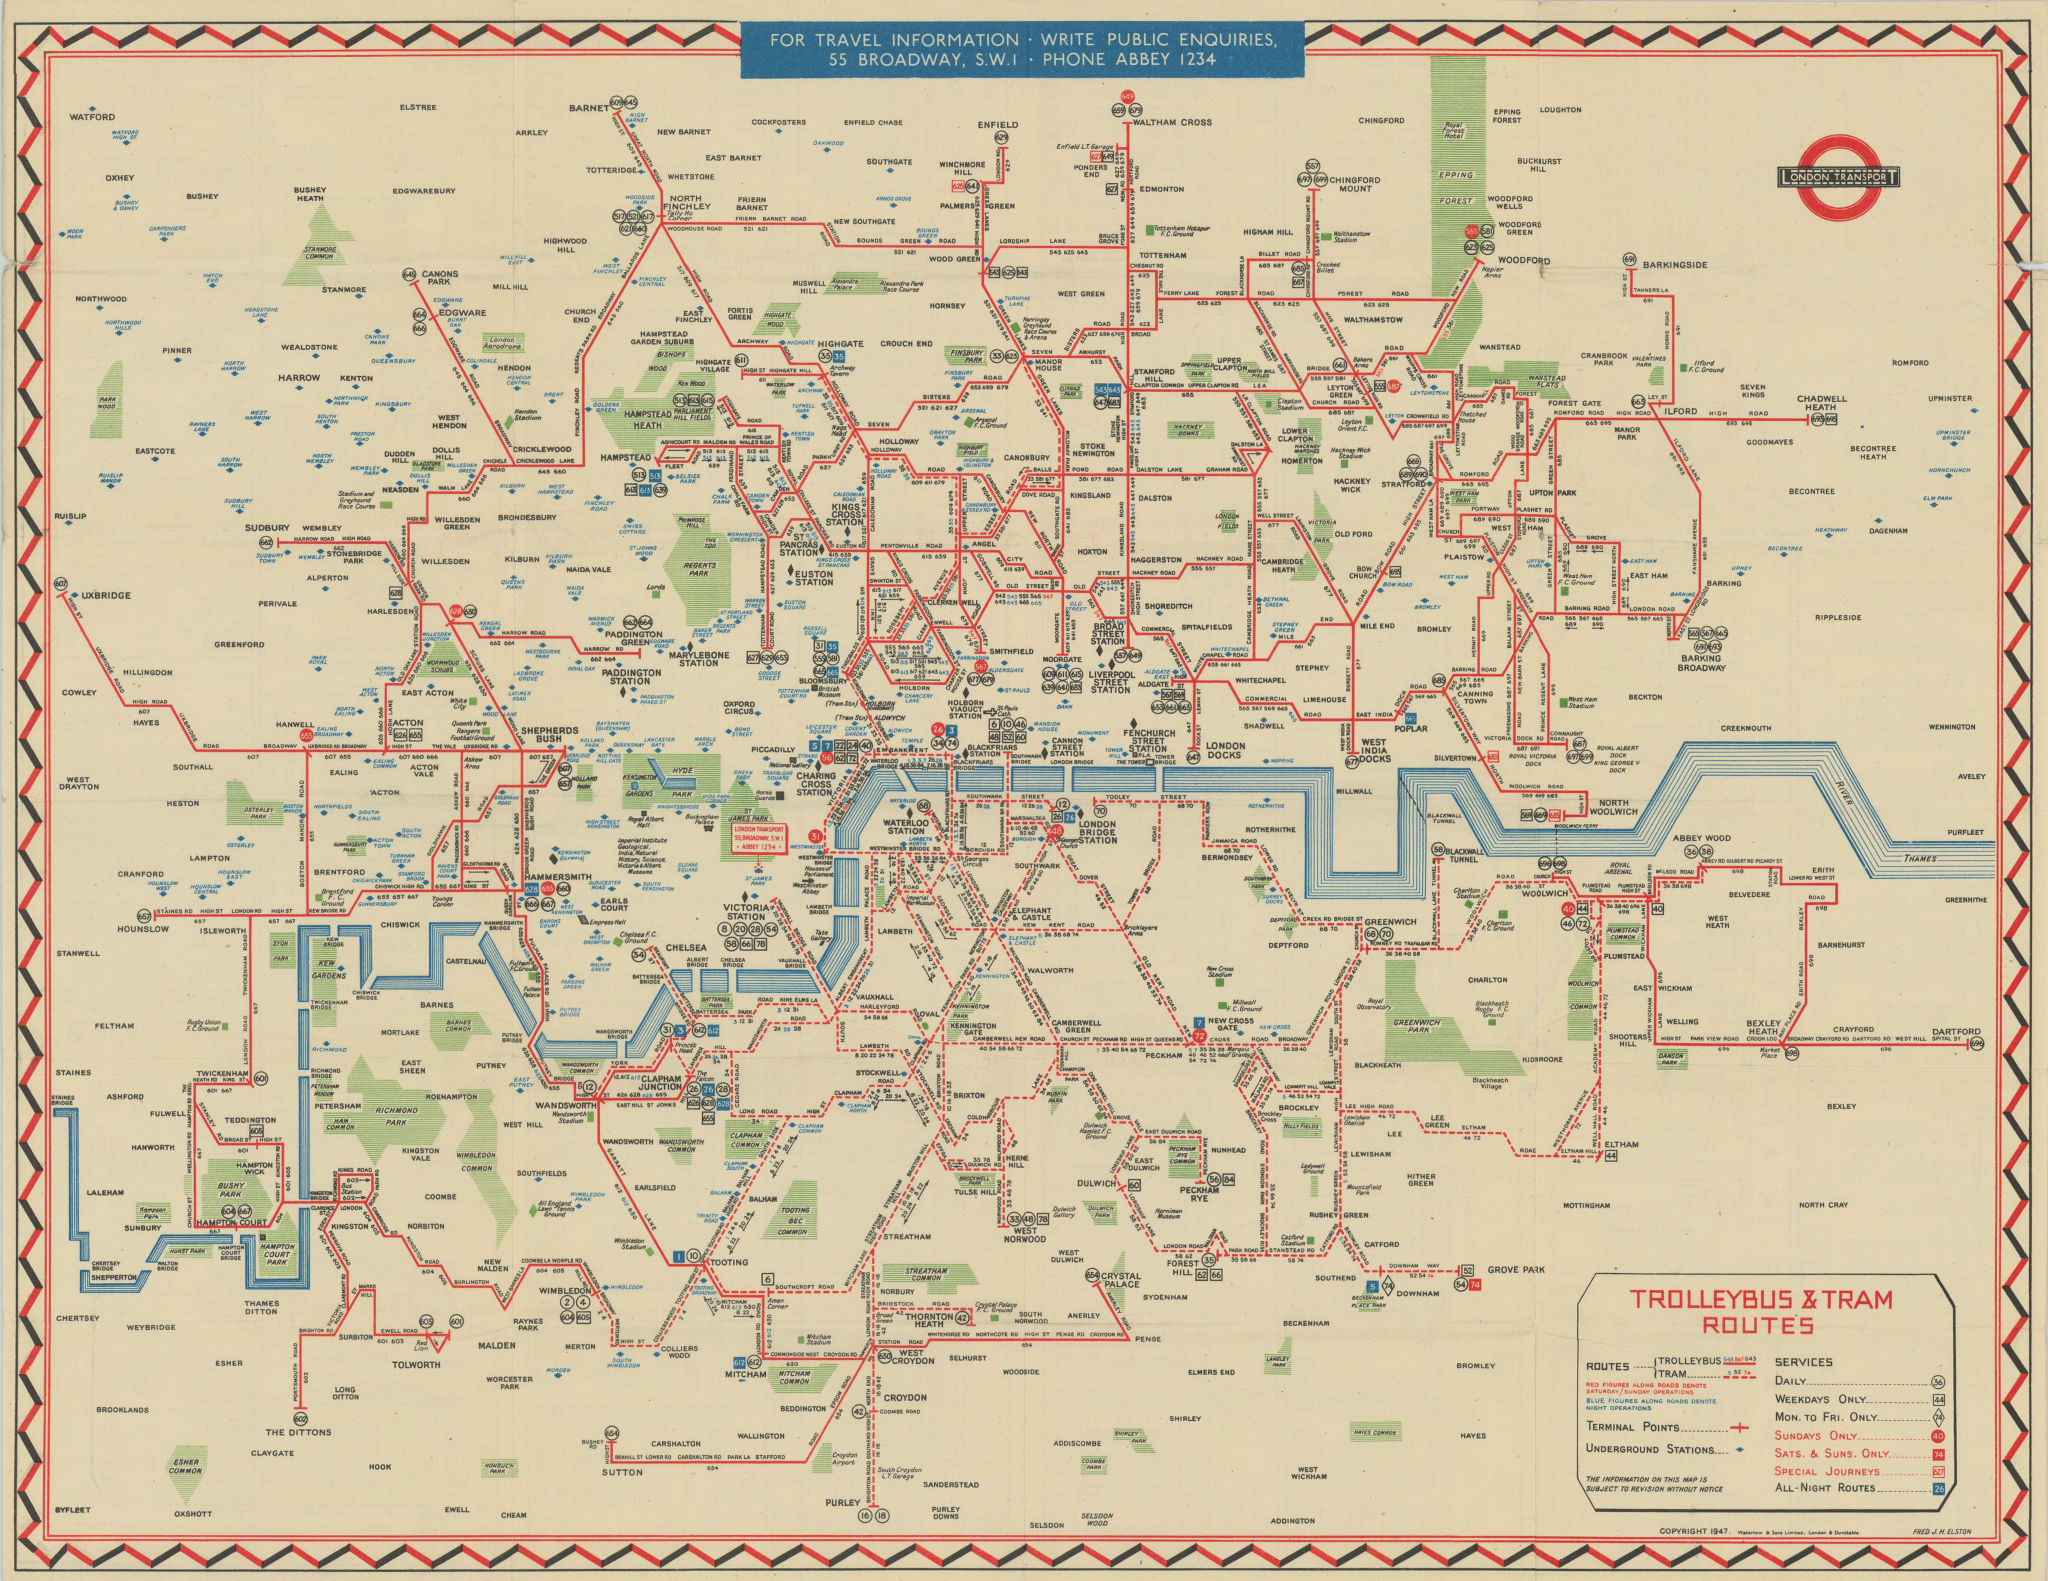 London Transport Trolleybus & Tram map of Routes. ELSTON. #1 1947 old